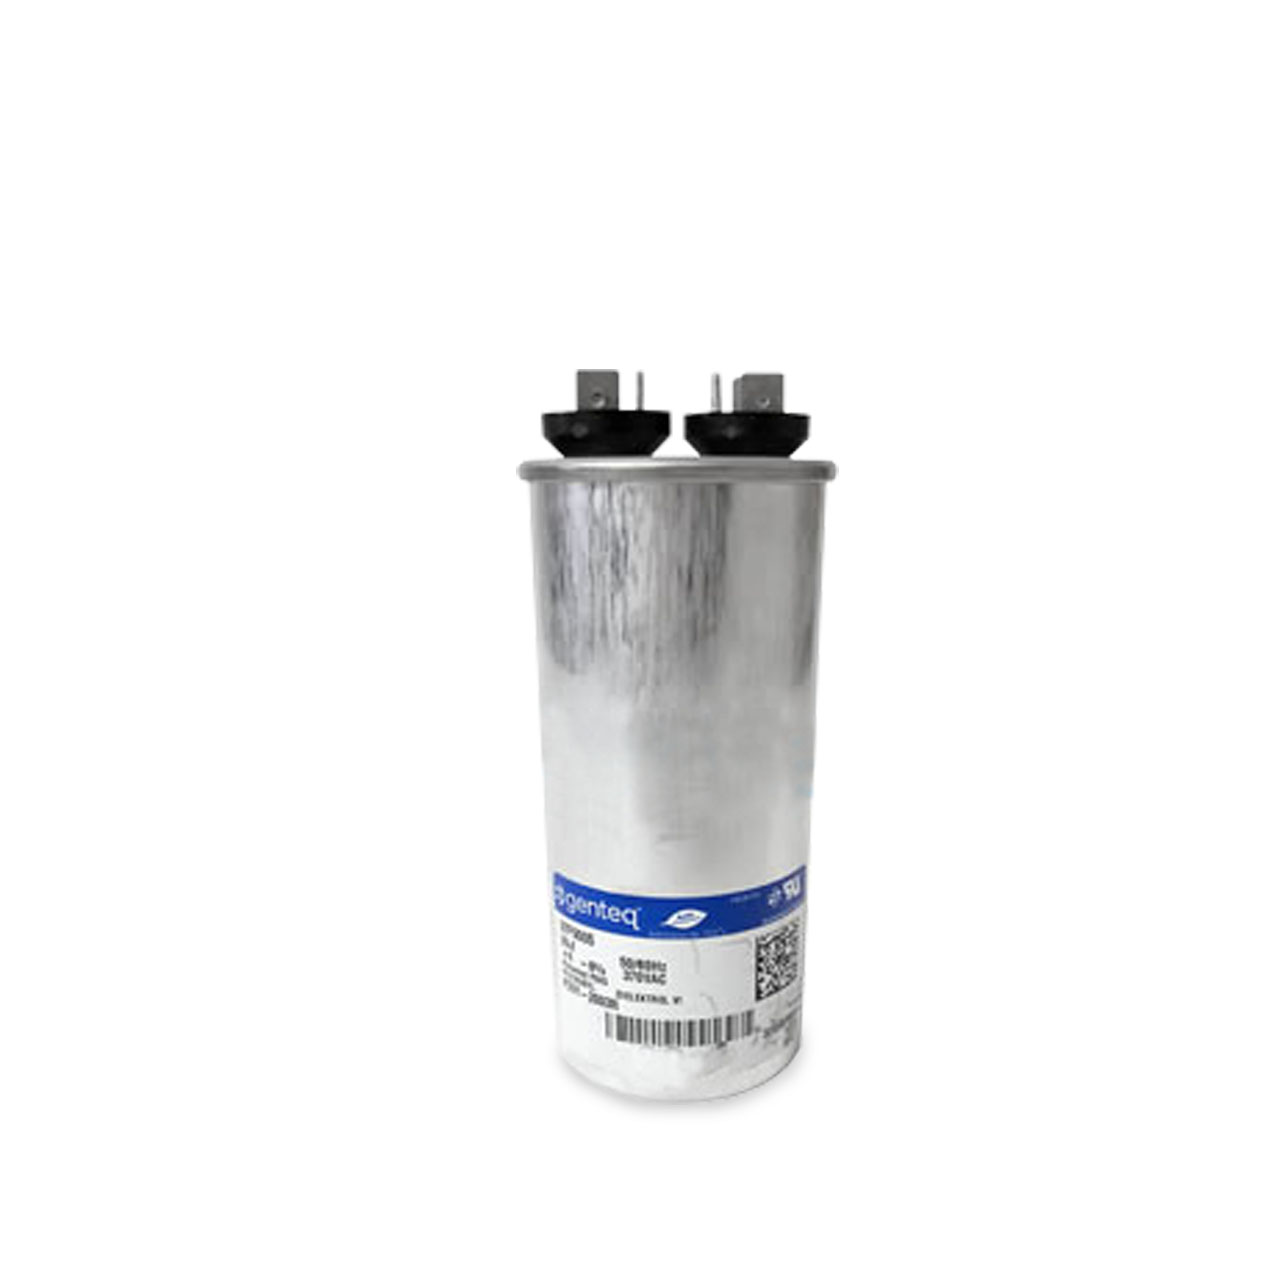 Hydromatic Pump - Hydromatic Single Phase Capacitor Pack 604450545  #HTC604450545 | Hydromatic Pump Wiring Diagram |  | RC Worst & Co.